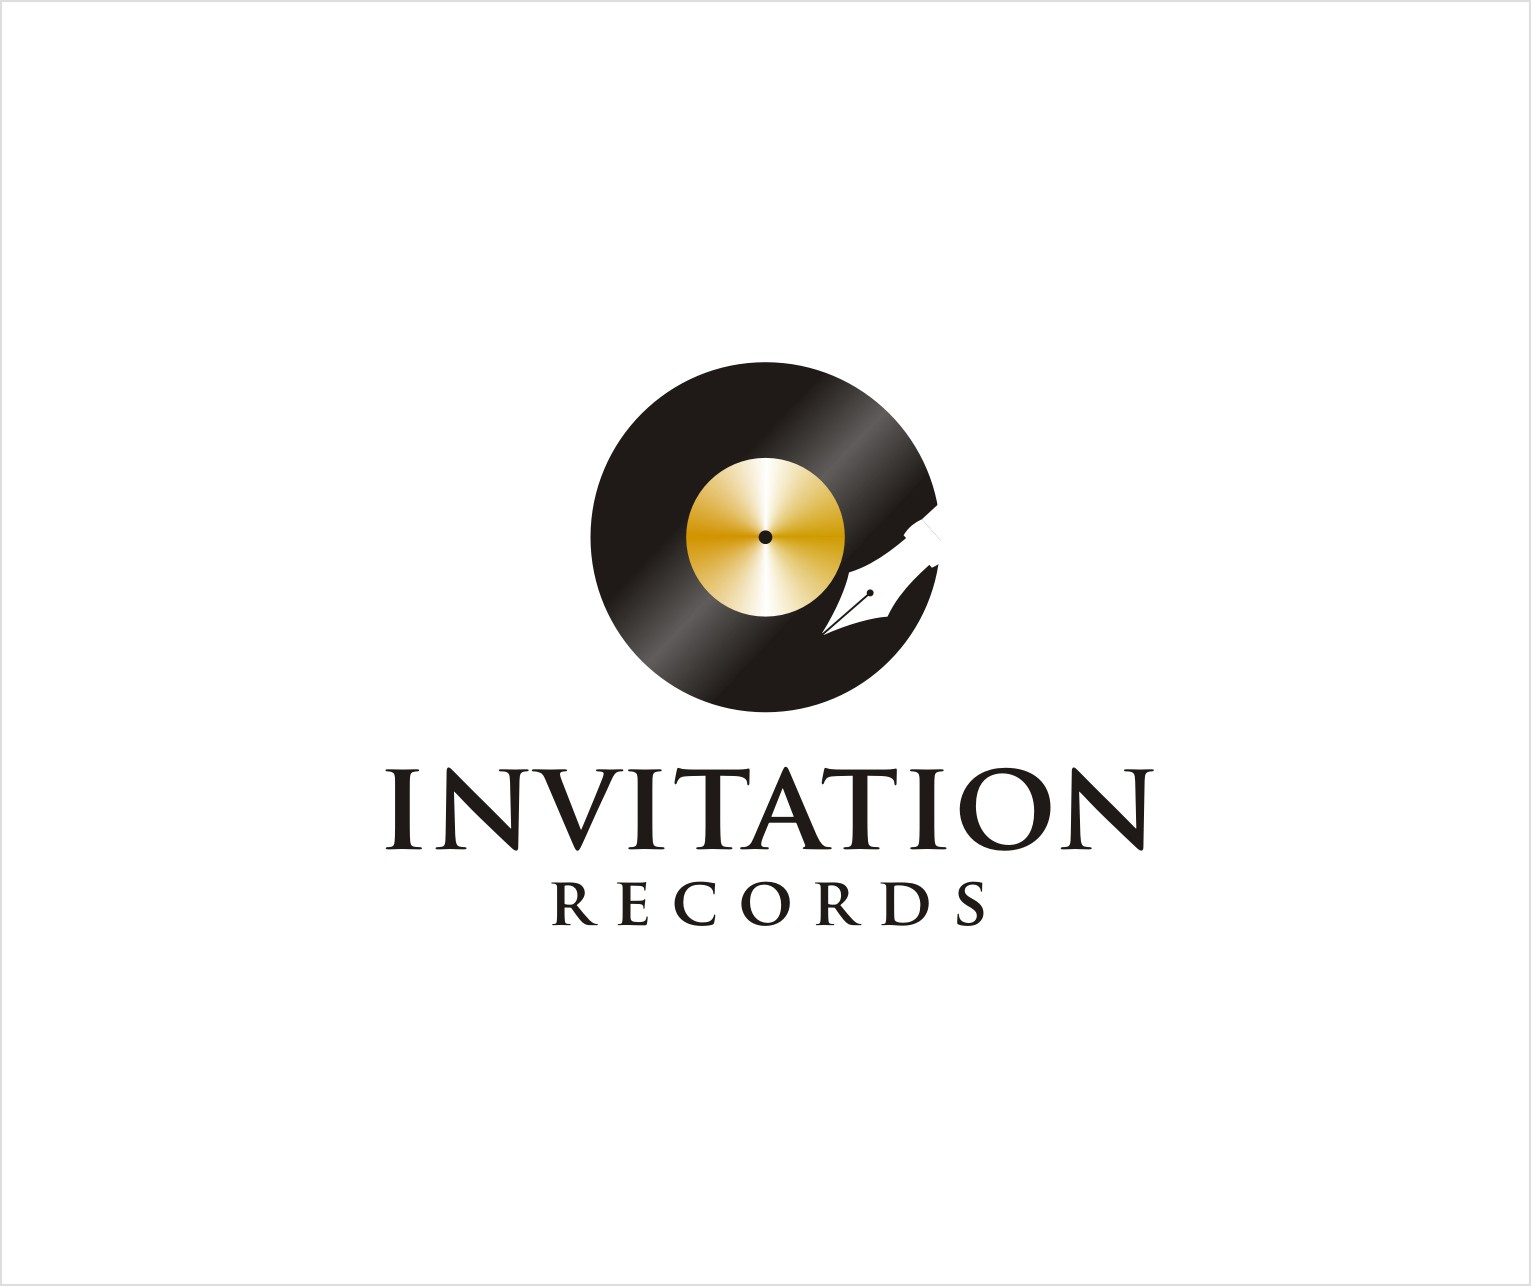 New logo wanted for Invitation Records